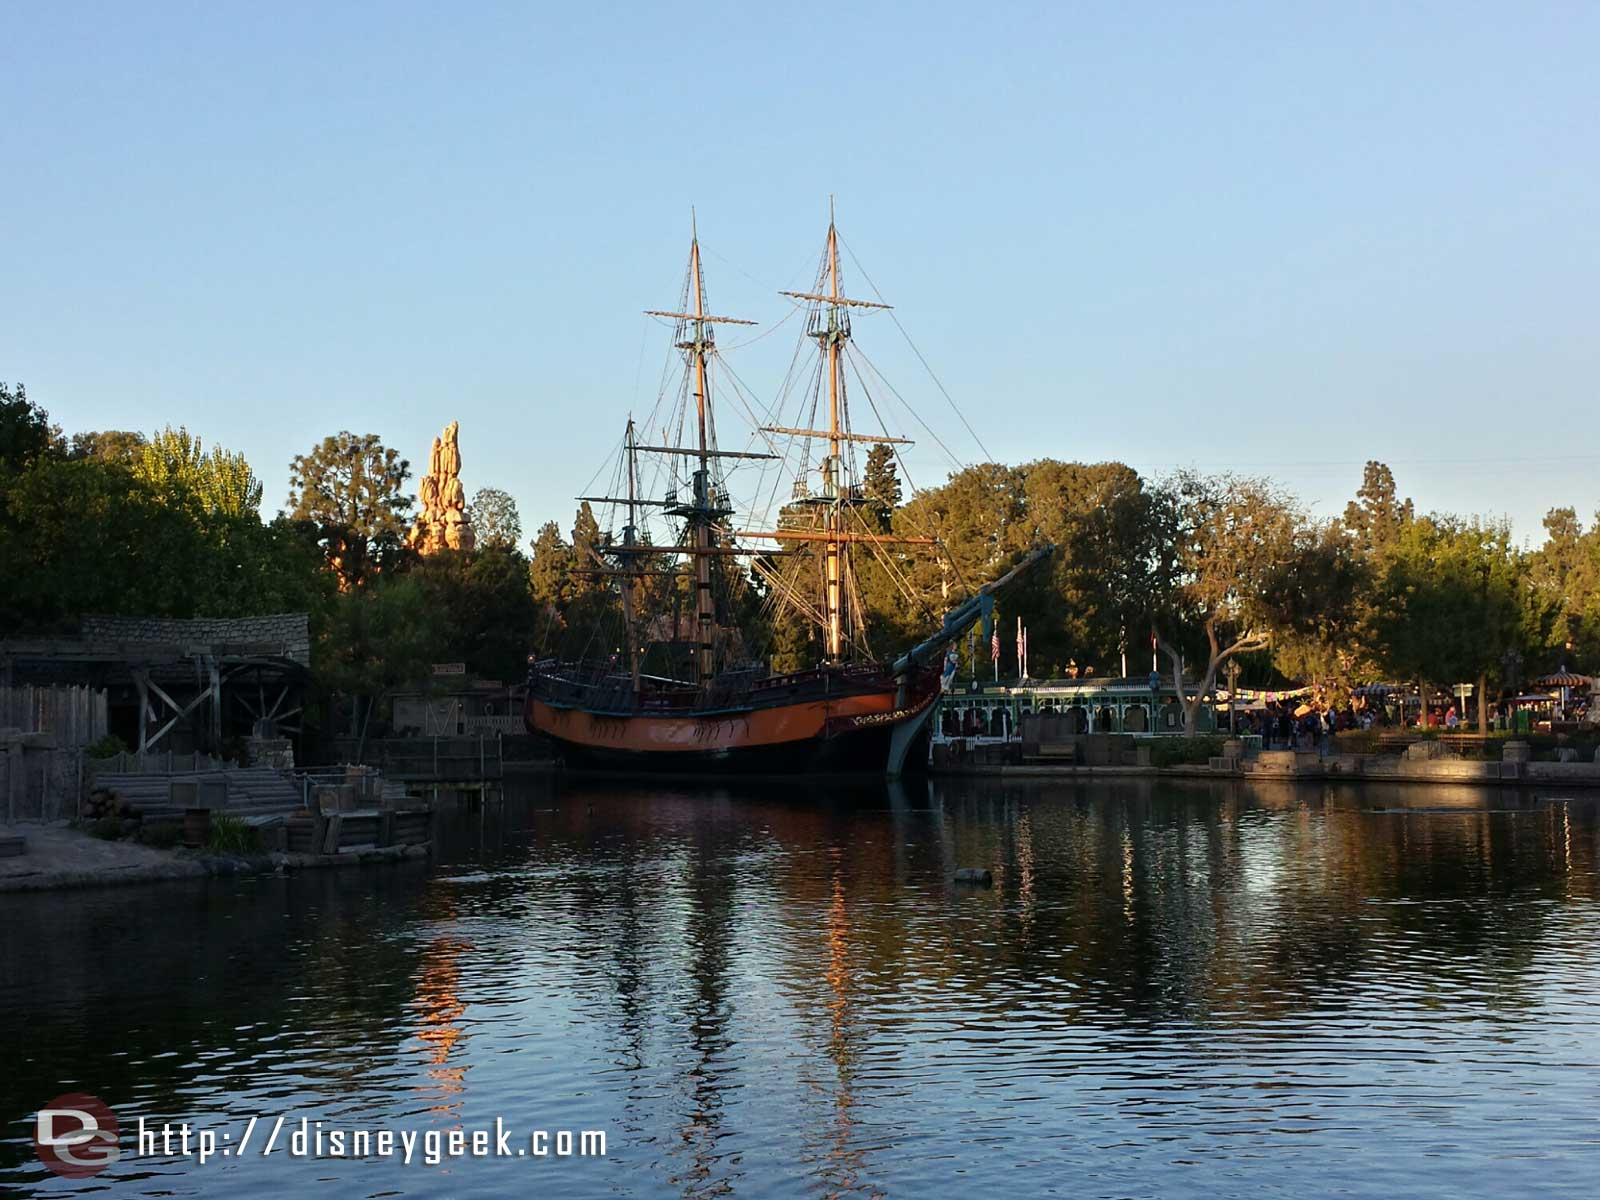 The Columbia in port to be a backdrop for the Halloween Party #Disneyland